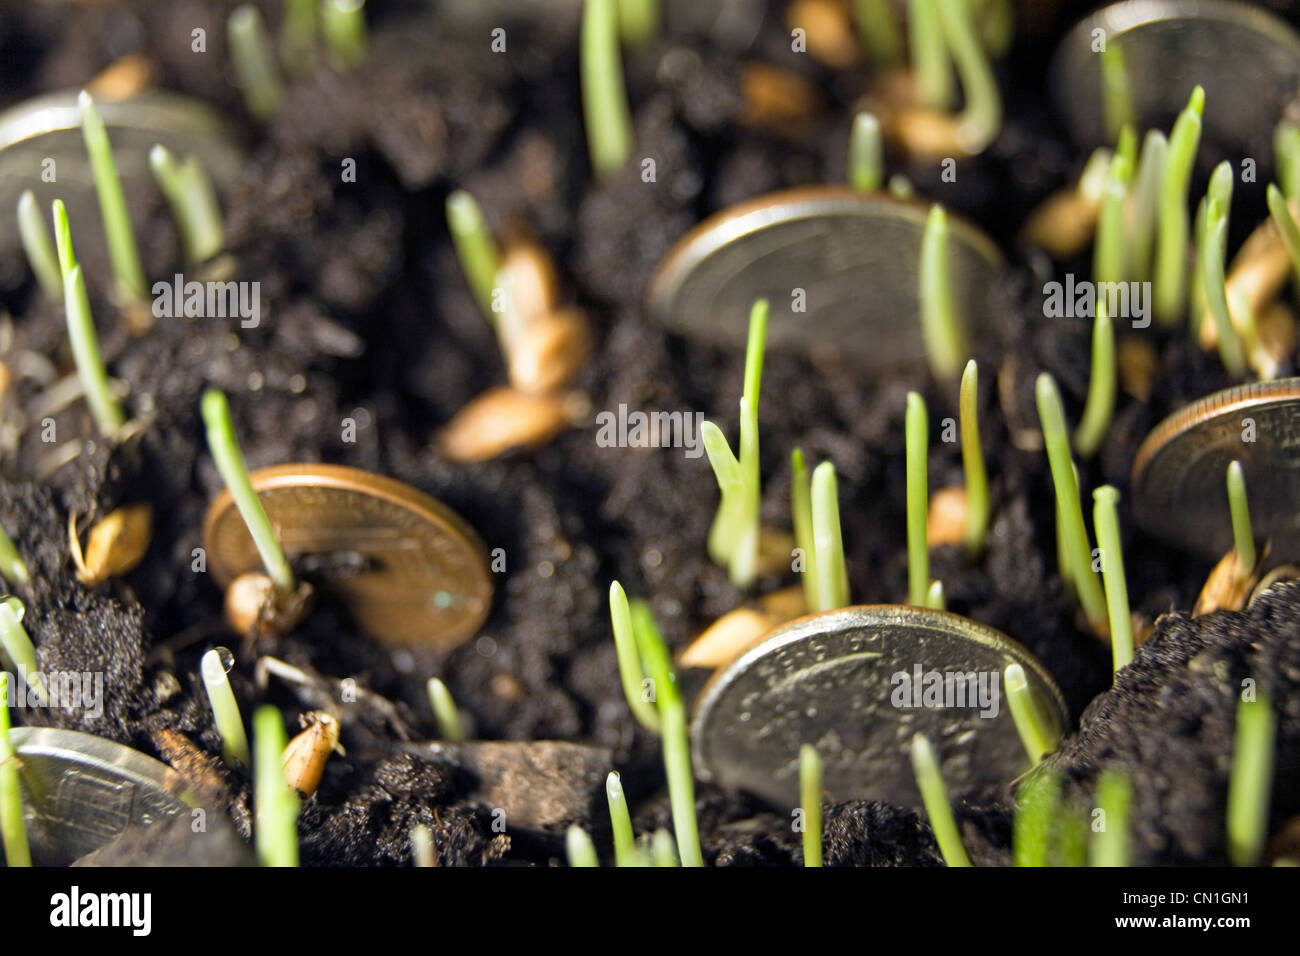 Coins Growing in Soil - Stock Image